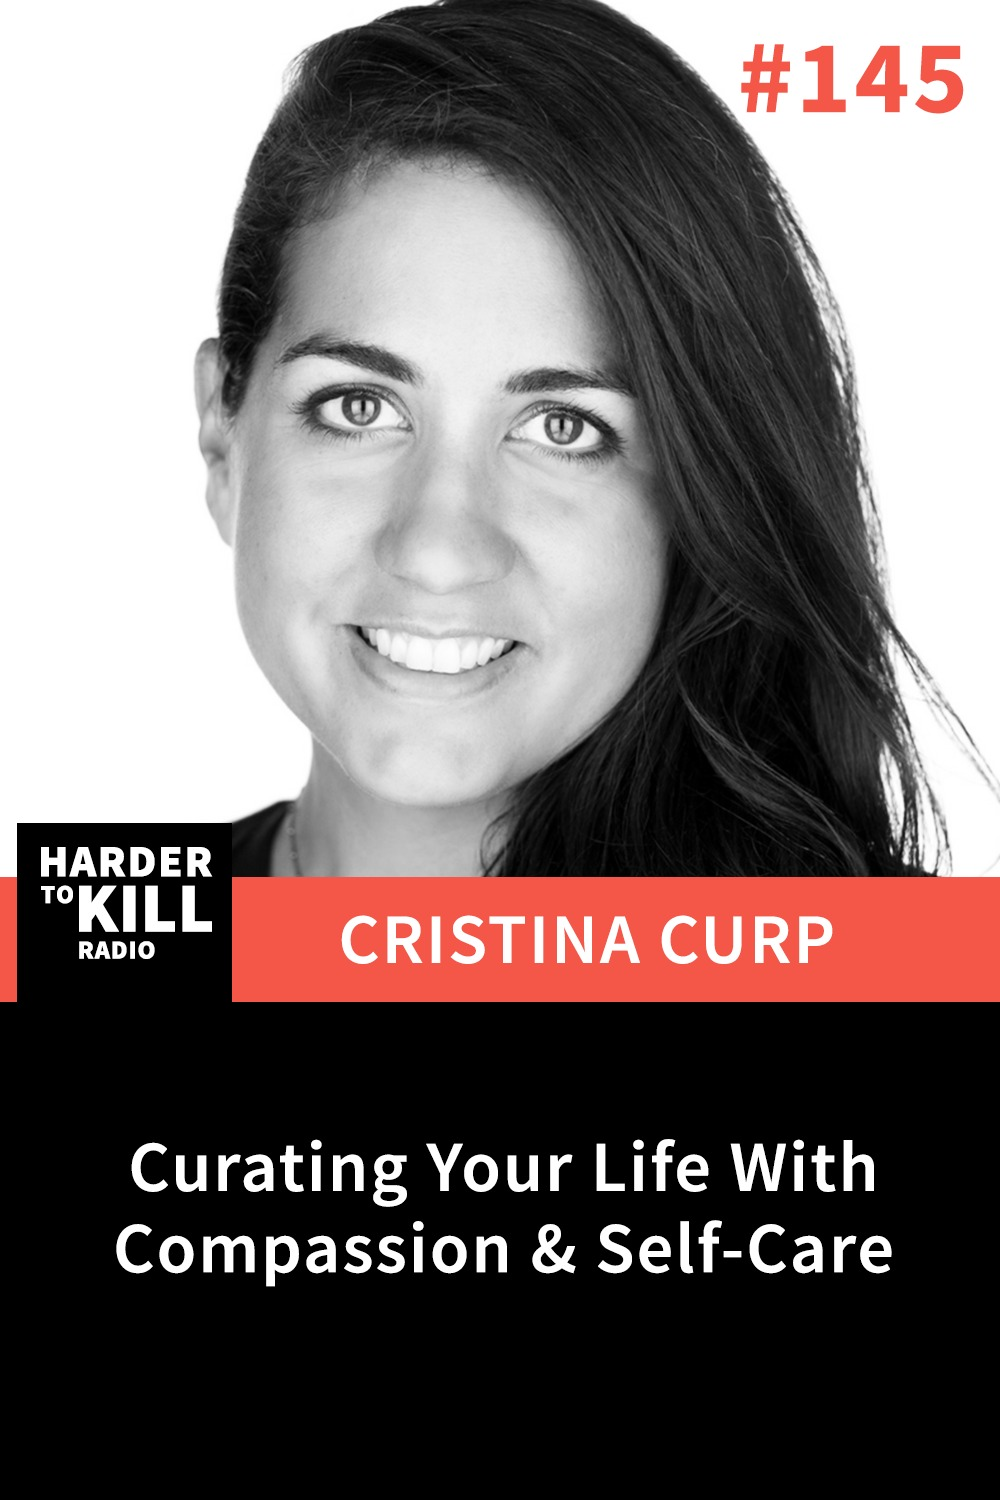 Harder to Kill Radio 145: Curating Your Life With Compassion & Self Care w/ Cristina Curp